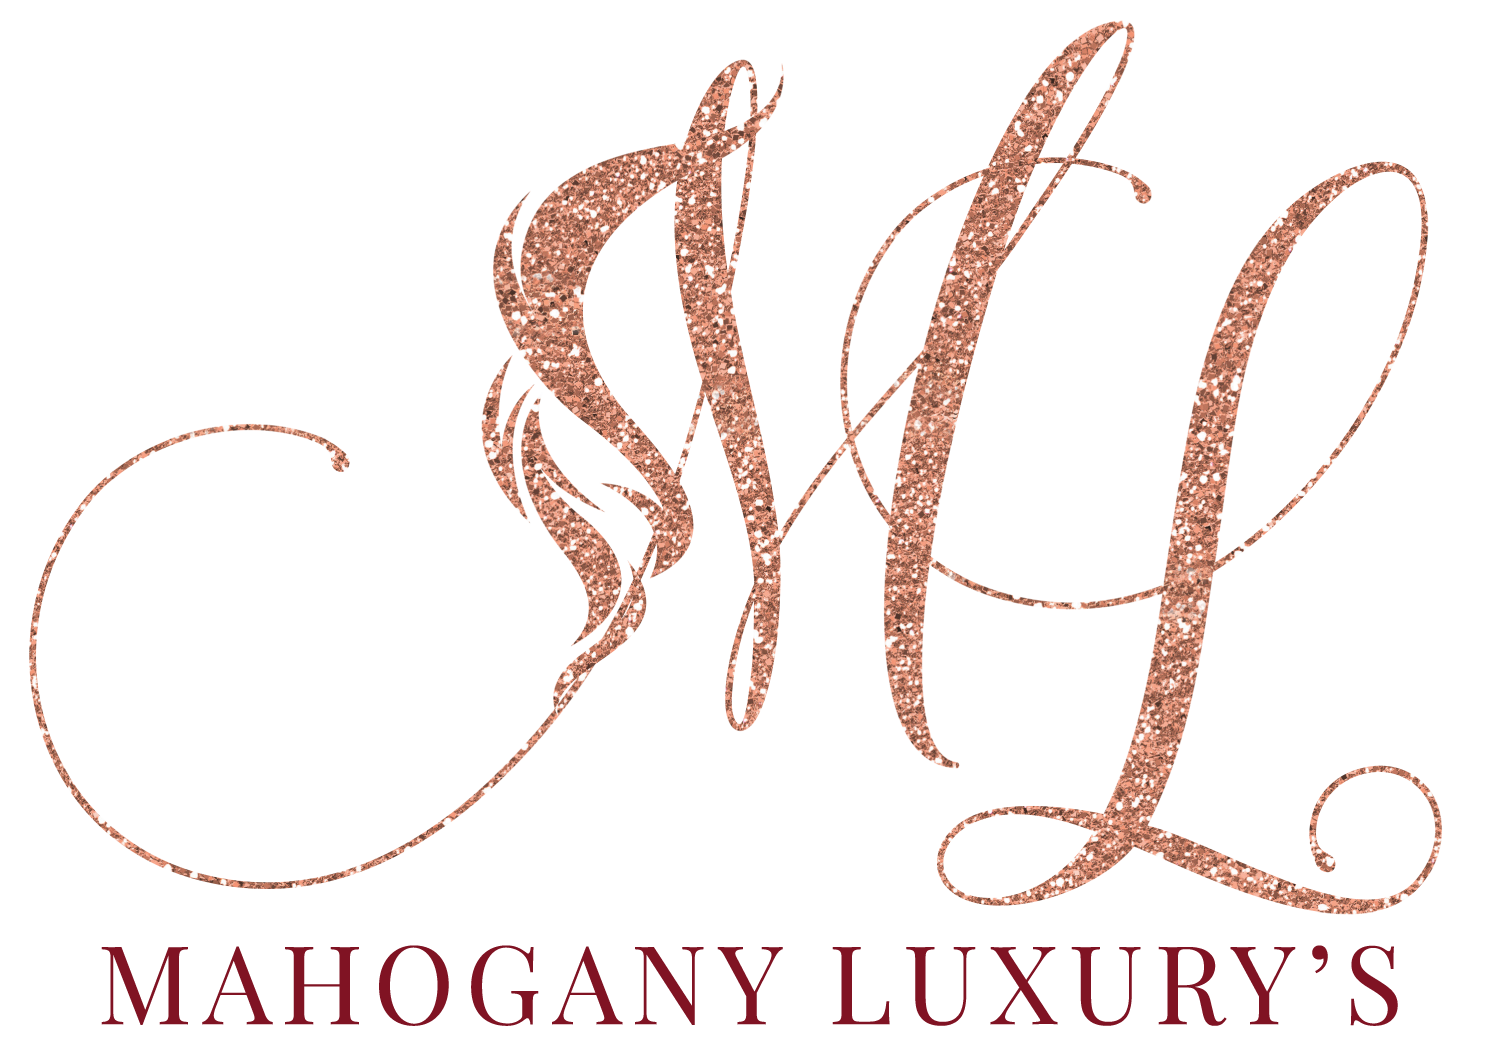 Mahogany Luxury's